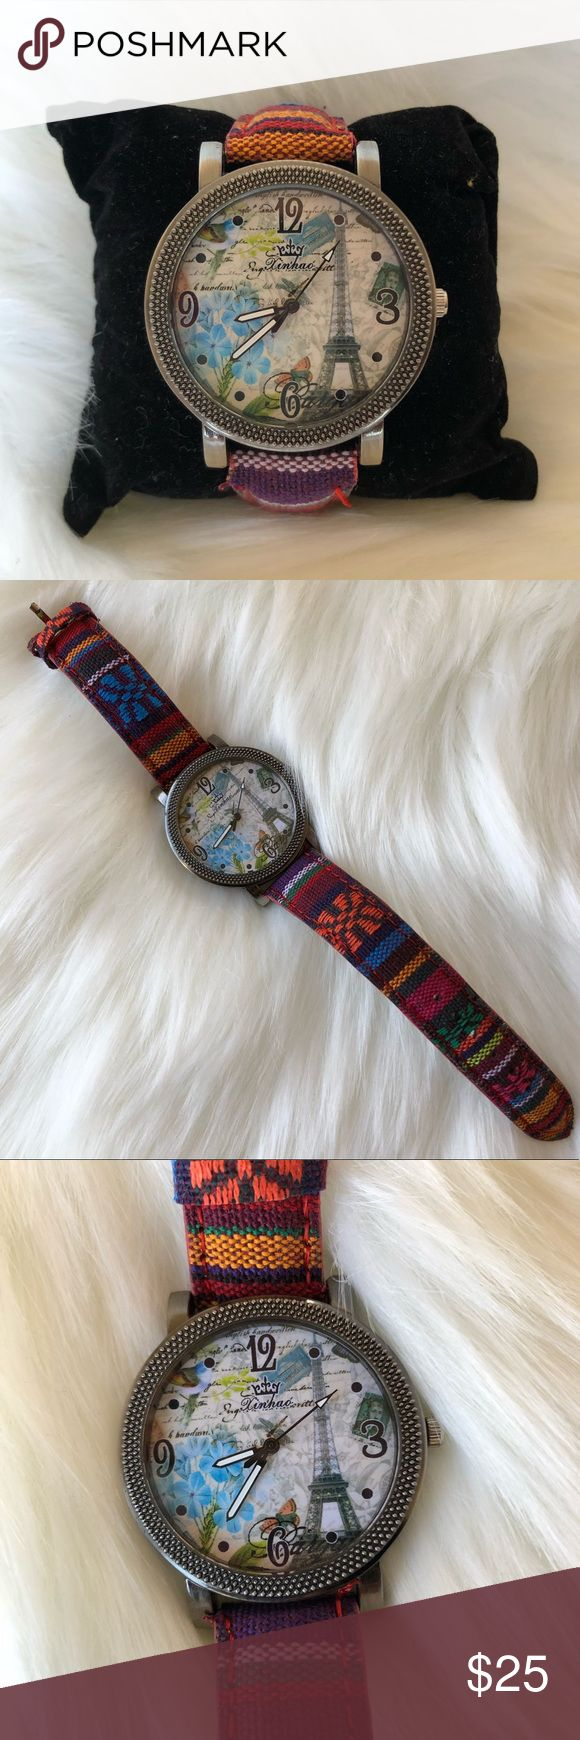 🇲🇽WOMEN VINTAGE MEXICAN FABRIC WATCH🇲🇽 100% Brand New High quality watch  Water resistant stainless steel back Band Material:fabric  Case Dia:4.3cm Band Width:2cm Weight:35g  Package included: 1pc wristwatch with box Accessories Watches